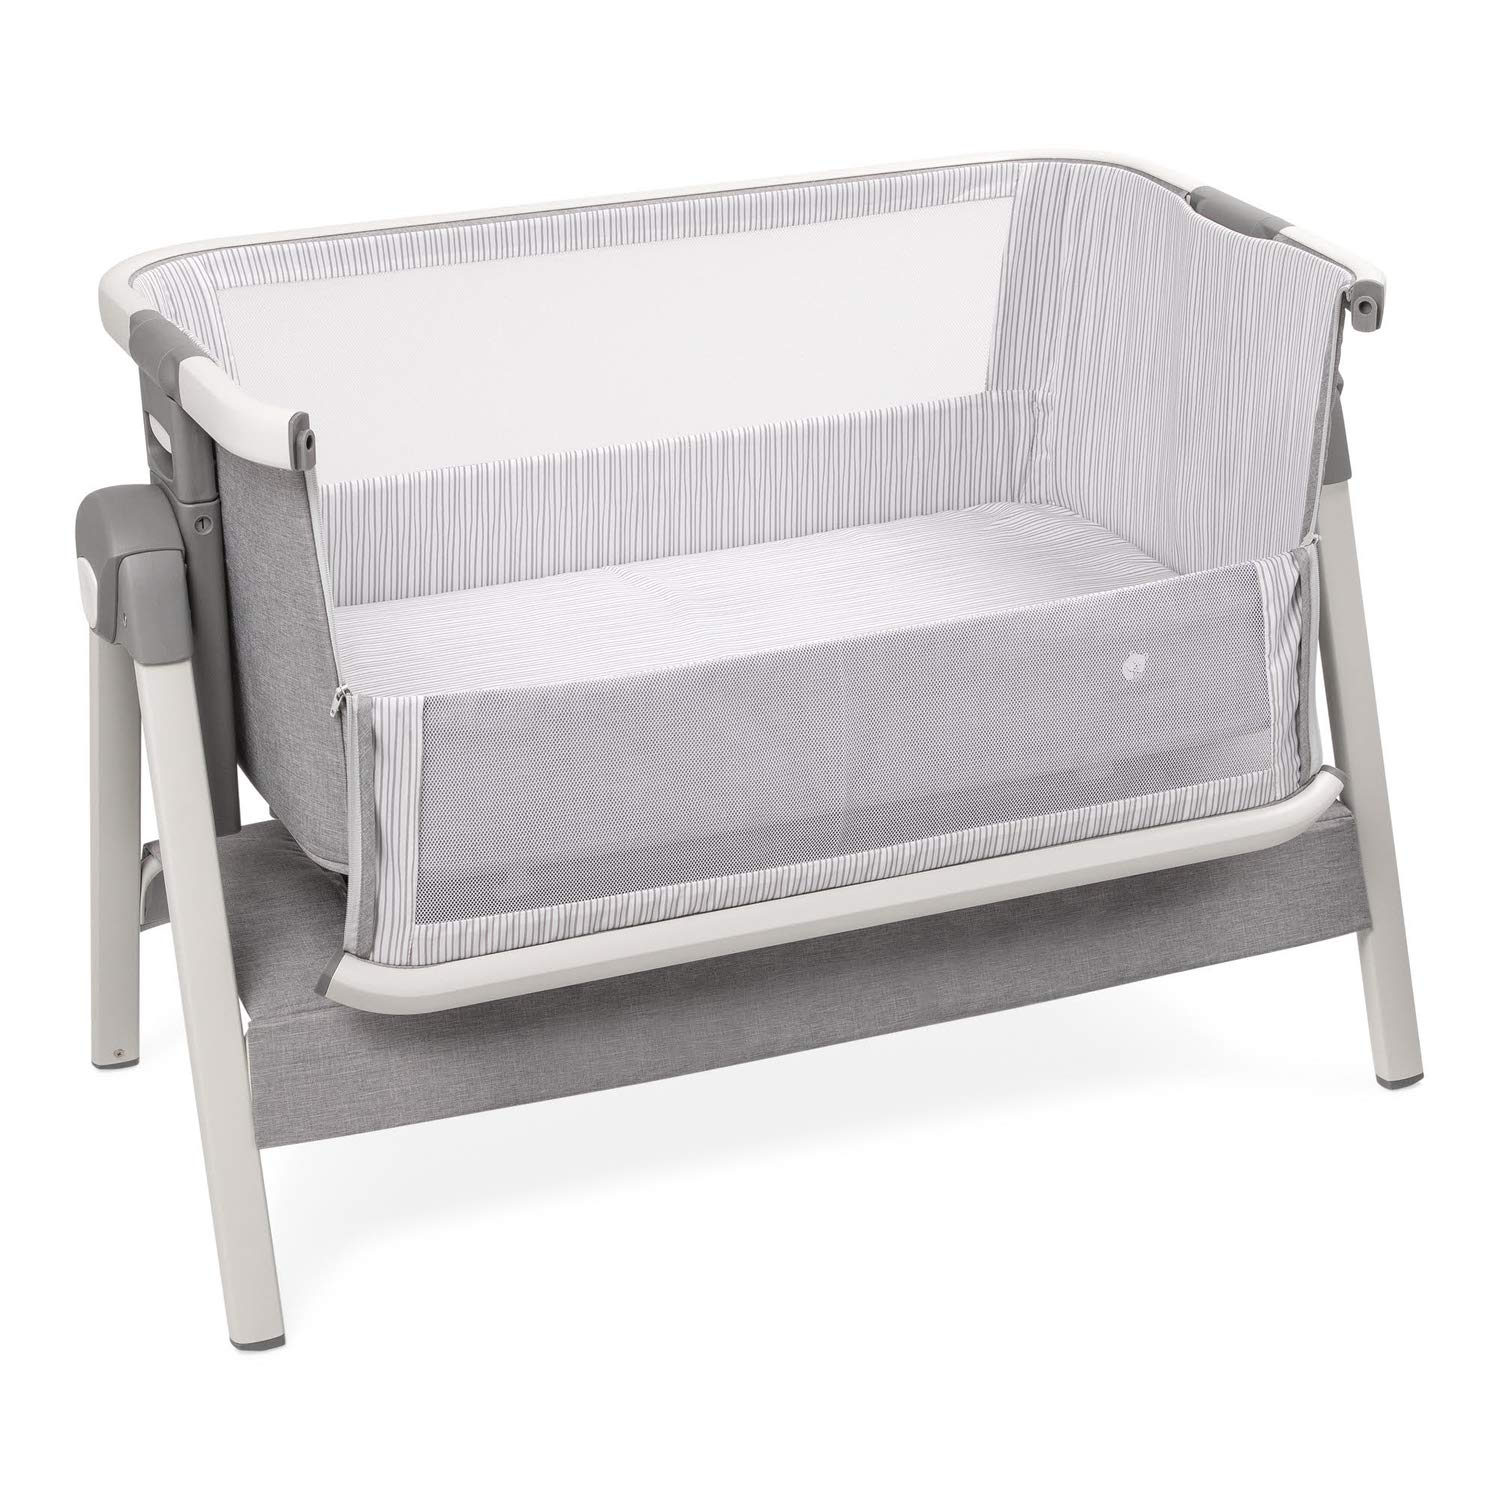 Bed Side Crib for Baby - Sleeper Bassinet Includes Travel Case, Mattress, Sheet, and Urine Pad - Keep Newborn Babies Close When in Your Bed - Bedside Bassinets by ComfyBumpy Co